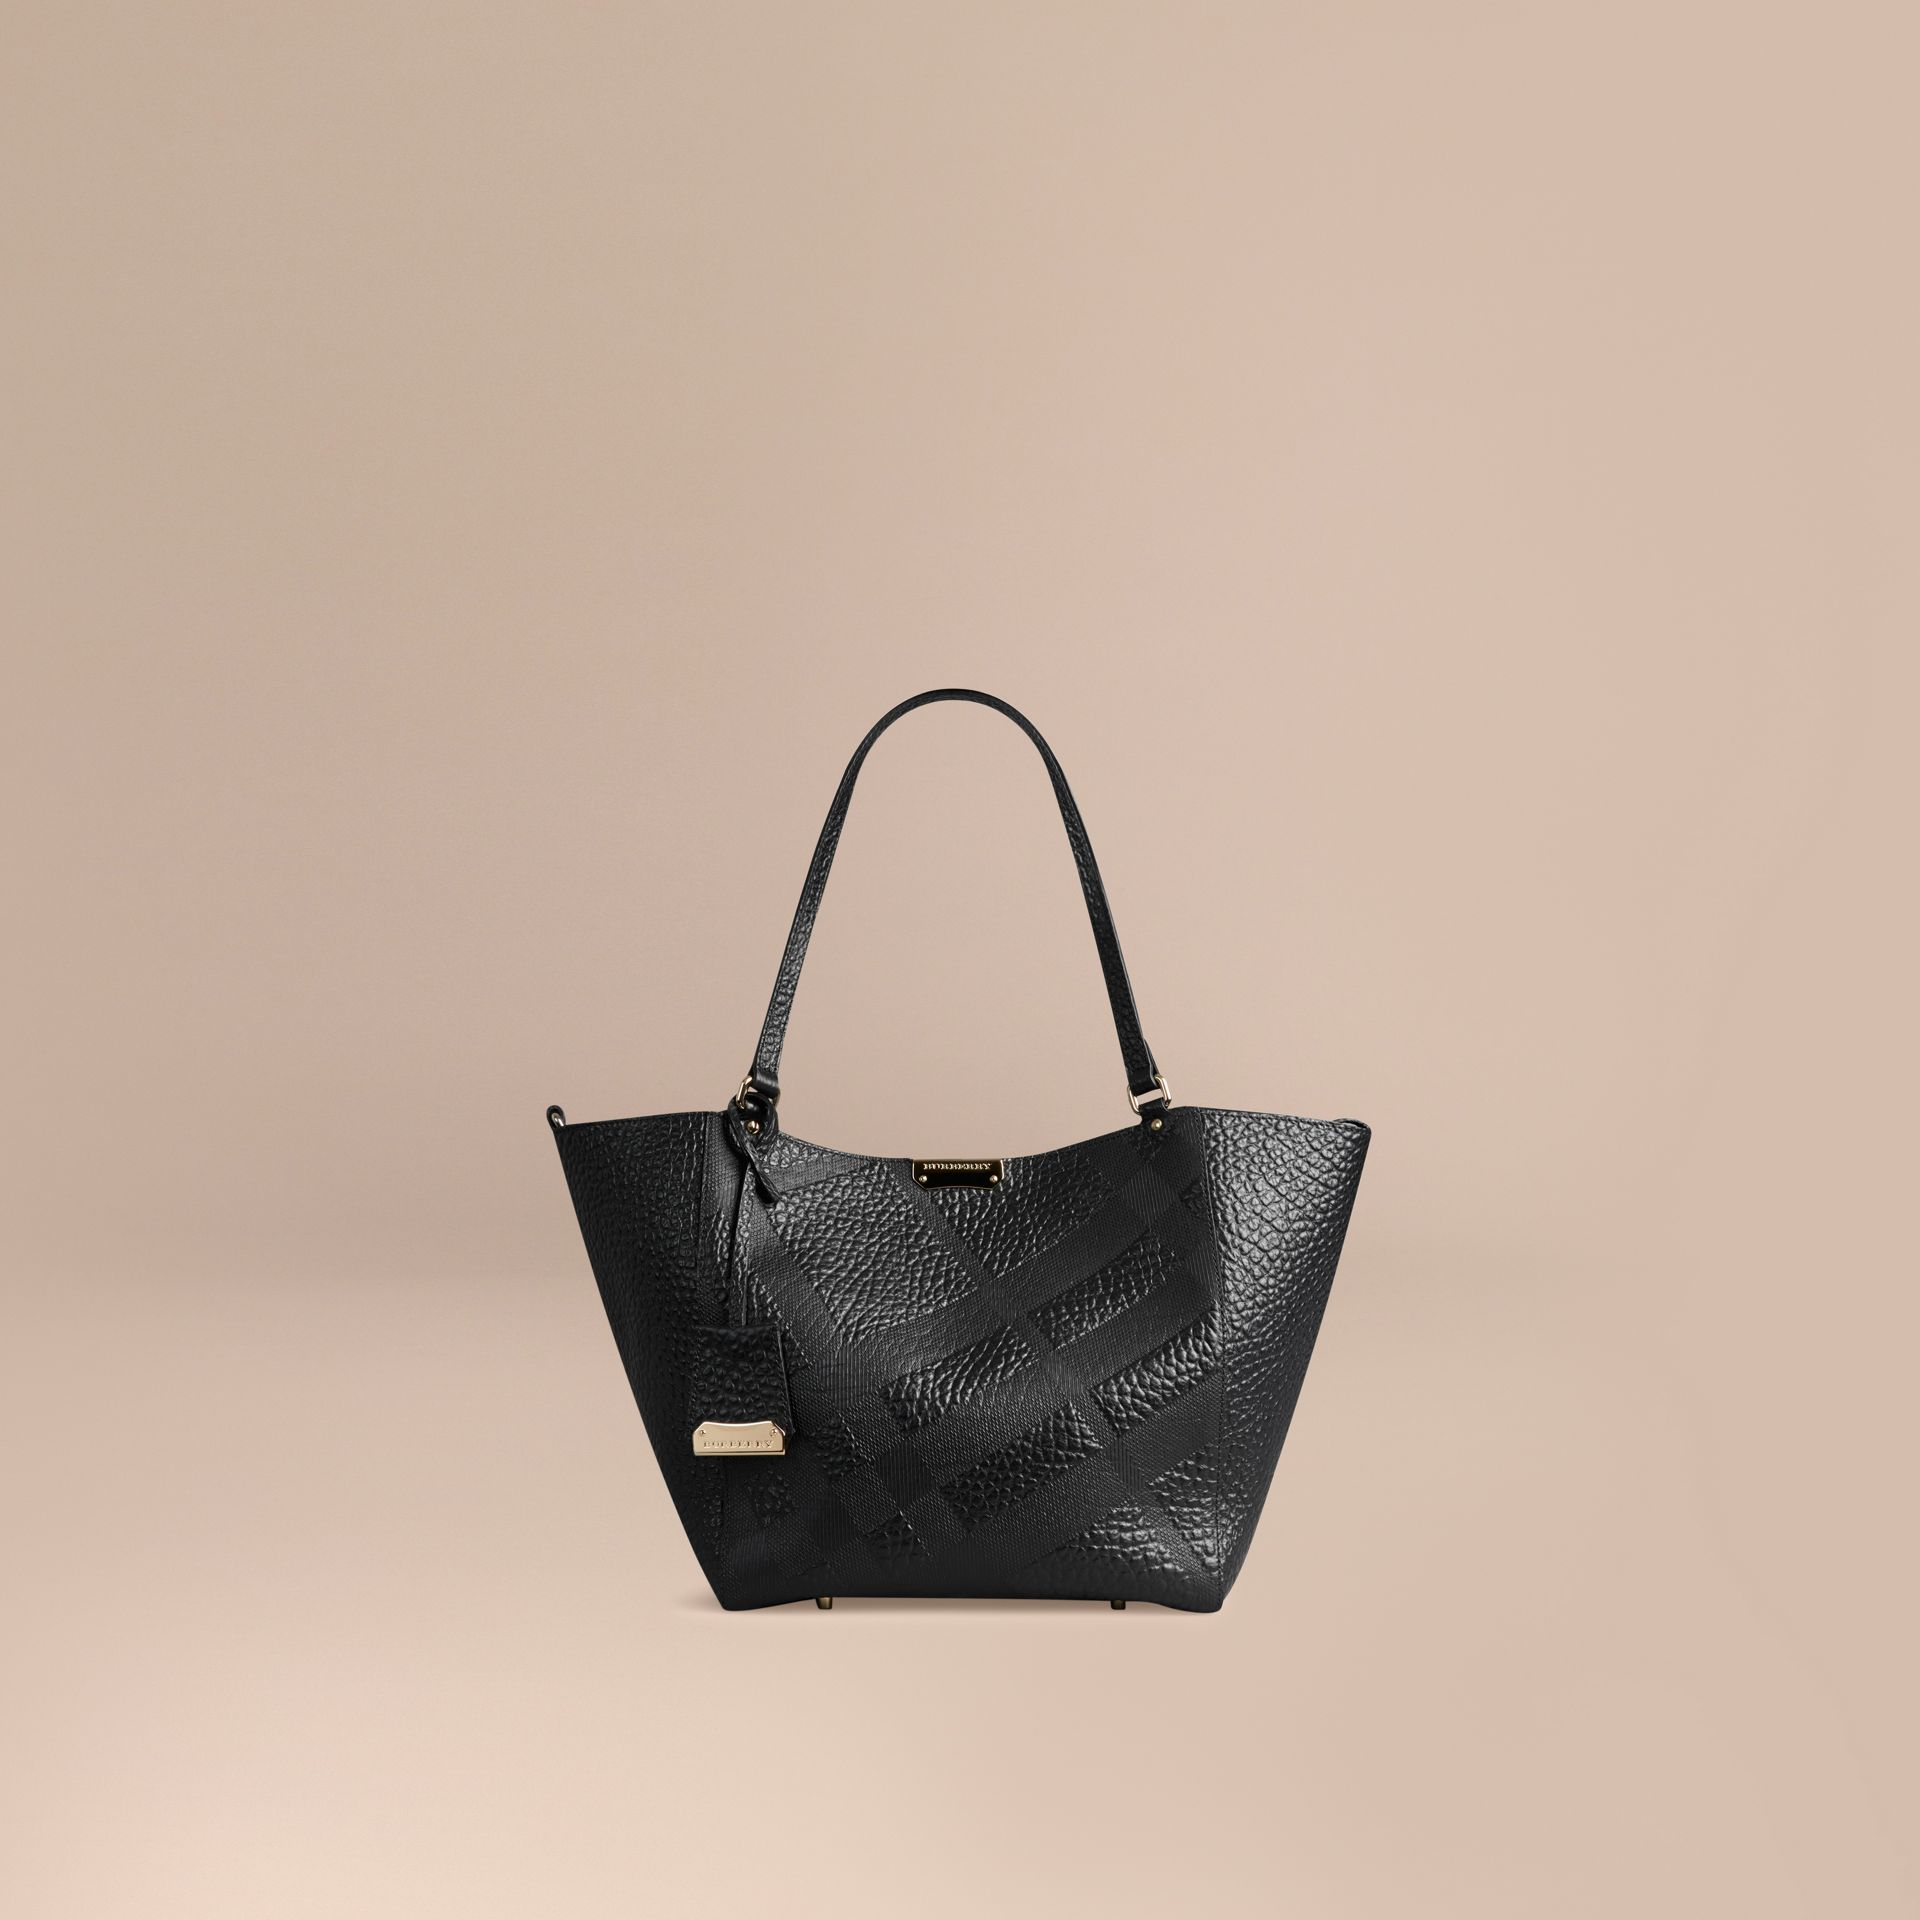 Black The Small Canter in Embossed Check Leather Black - gallery image 1